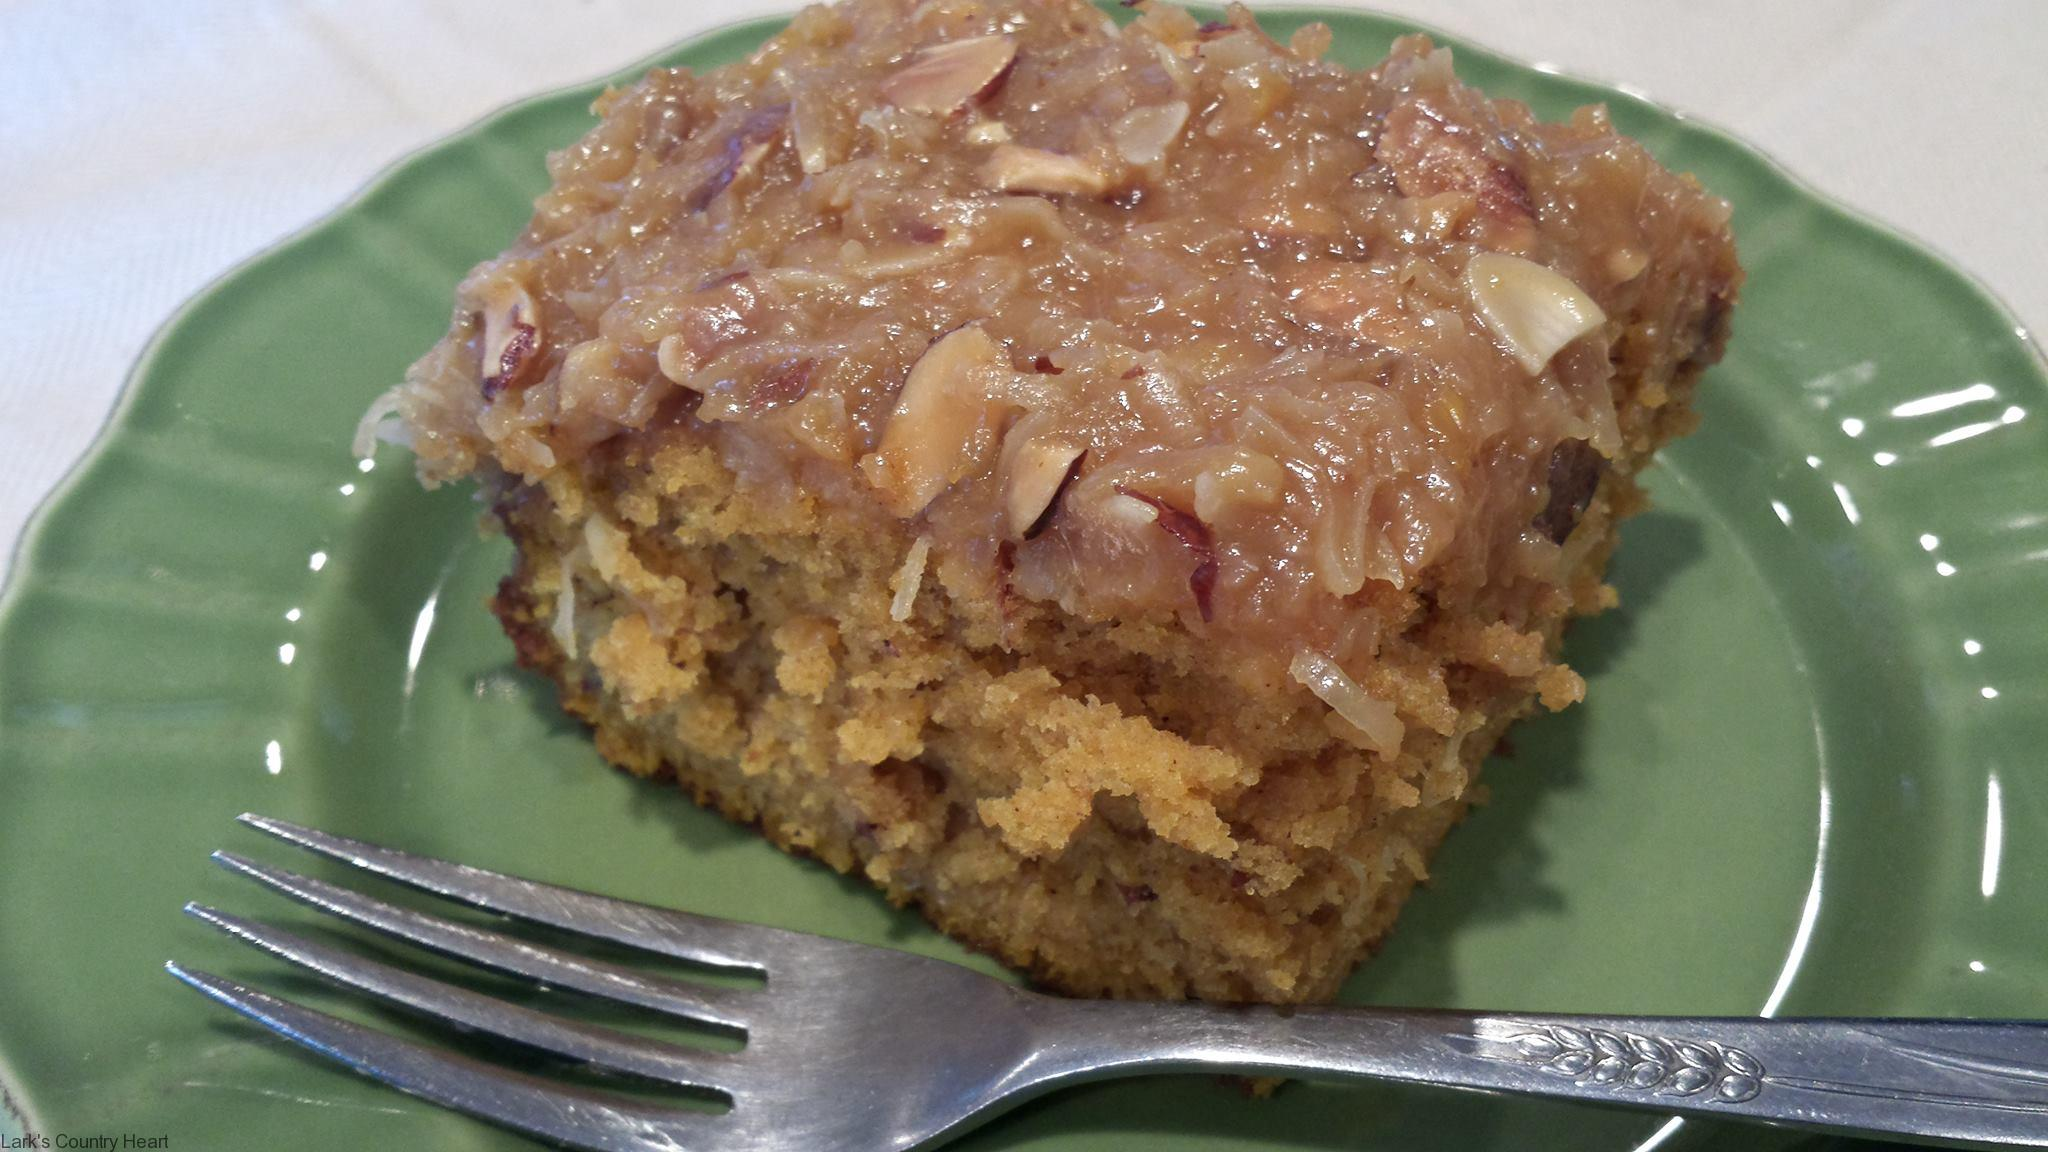 Sweet Potato Cake with Praline Frosting